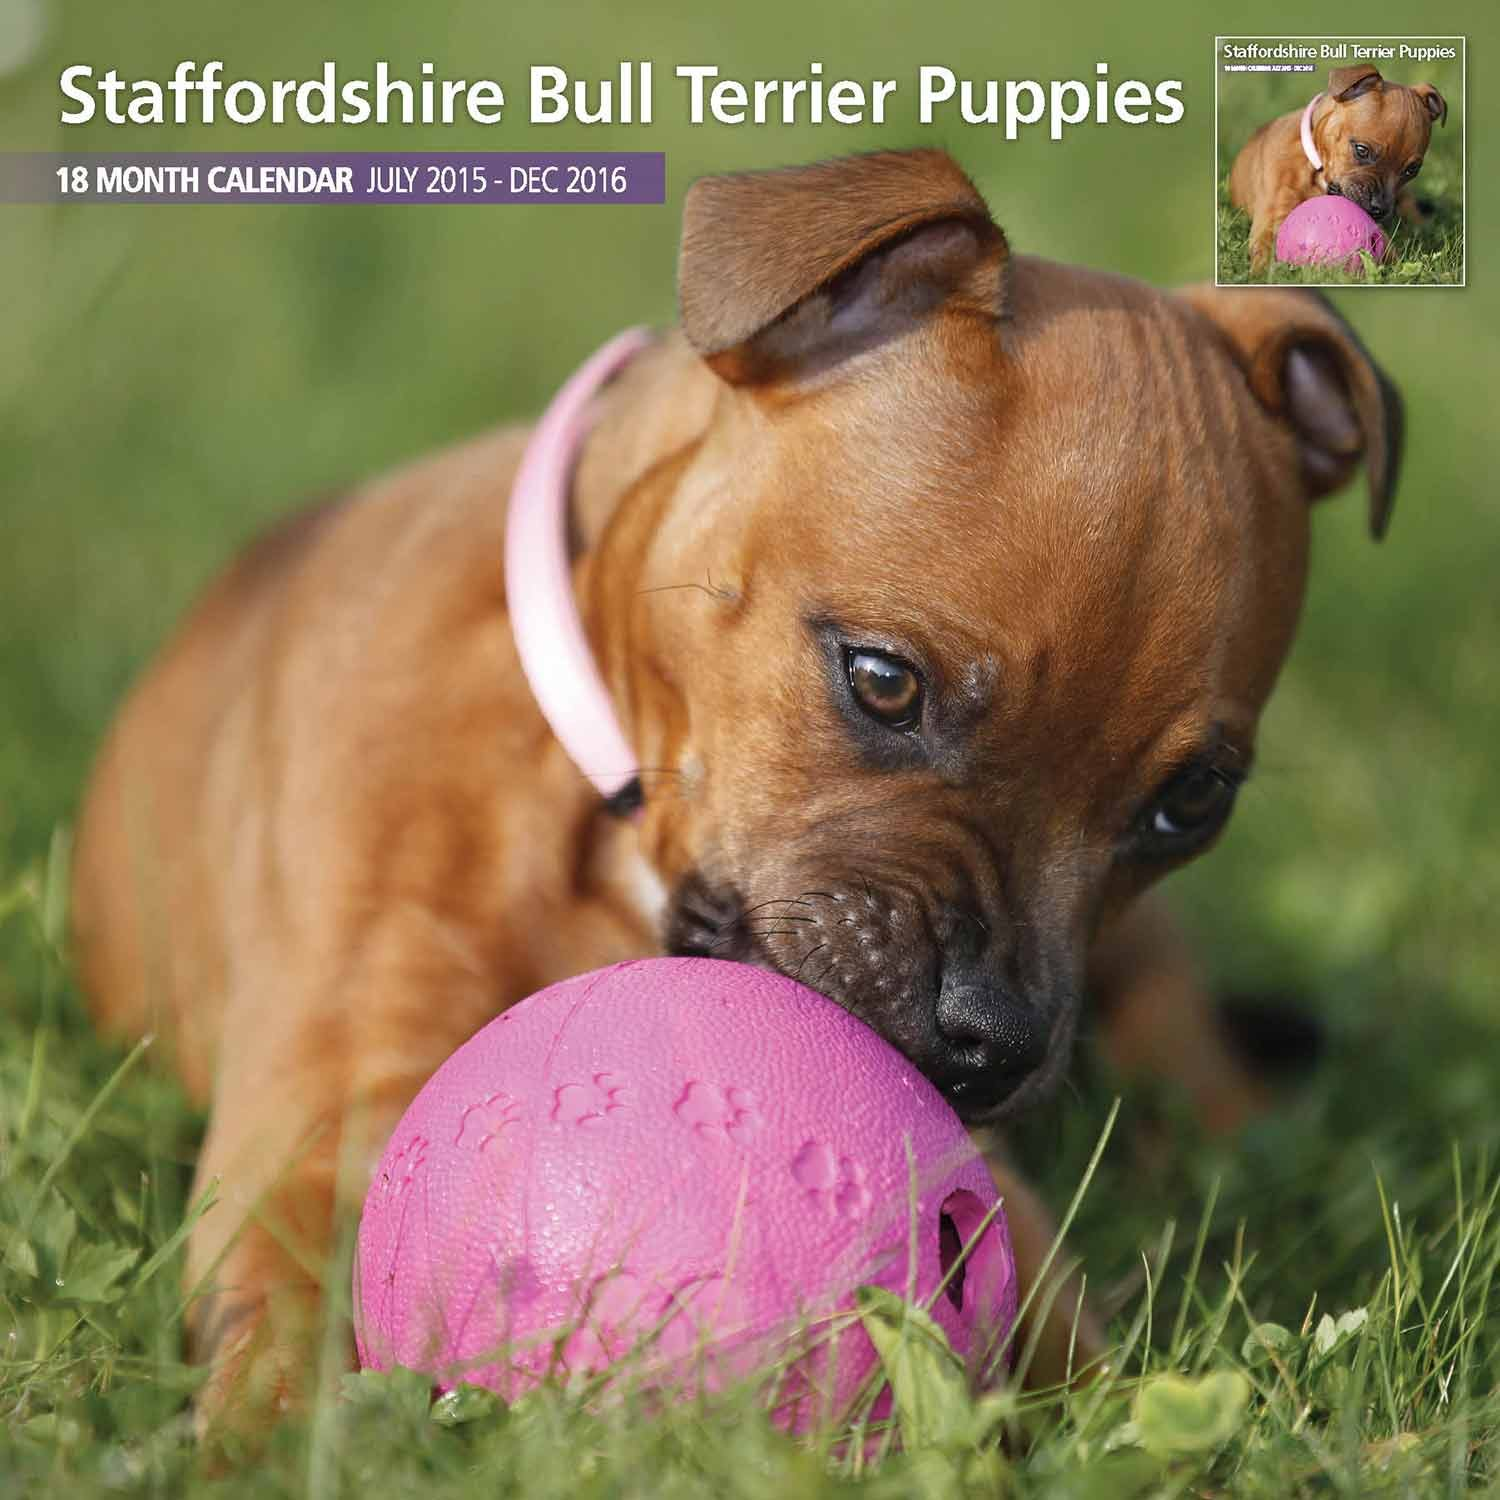 Magnet & Steel Staffordshire Bull Terrier Puppies 18 Month 2016 Traditional Wall Calendar (7217)